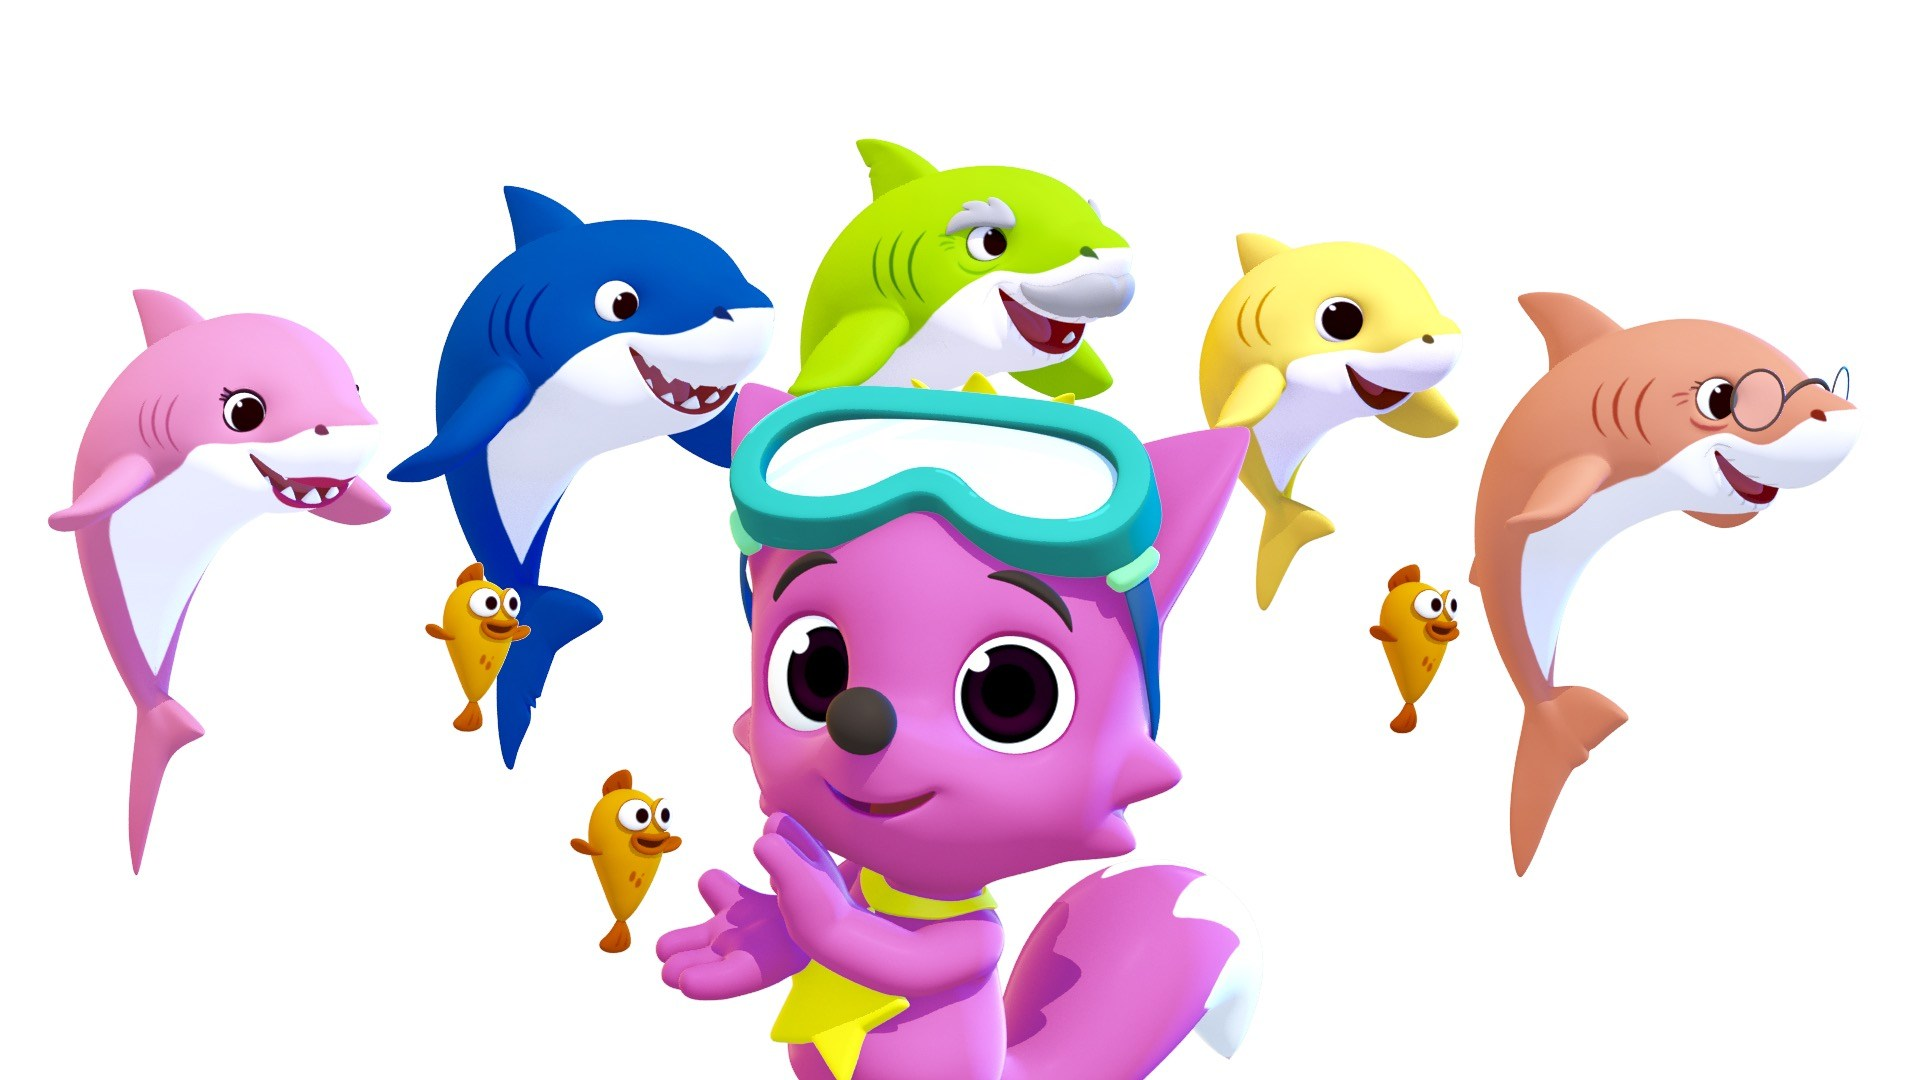 Baby shark png character. Pinkfong s becomes global